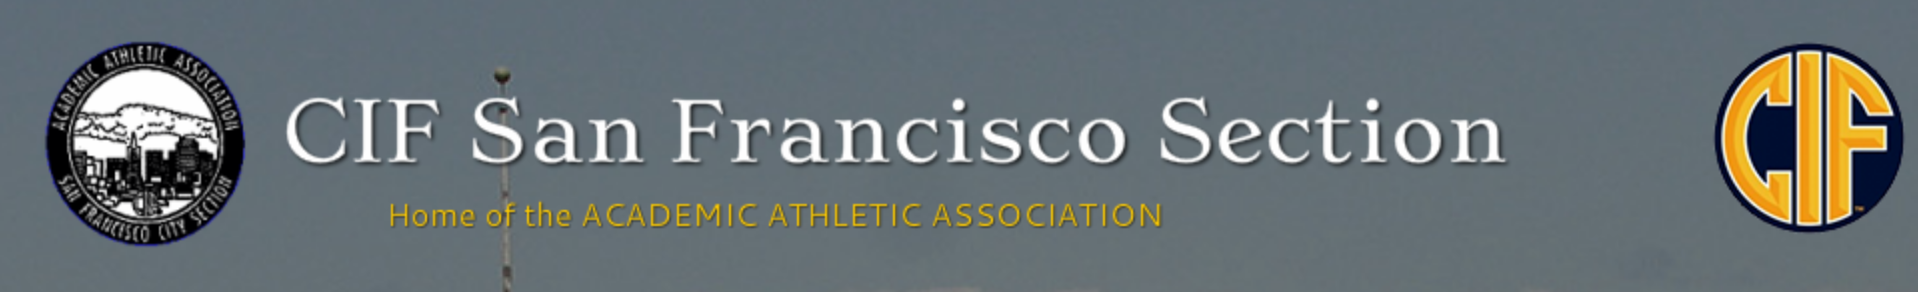 CIF Website Banner